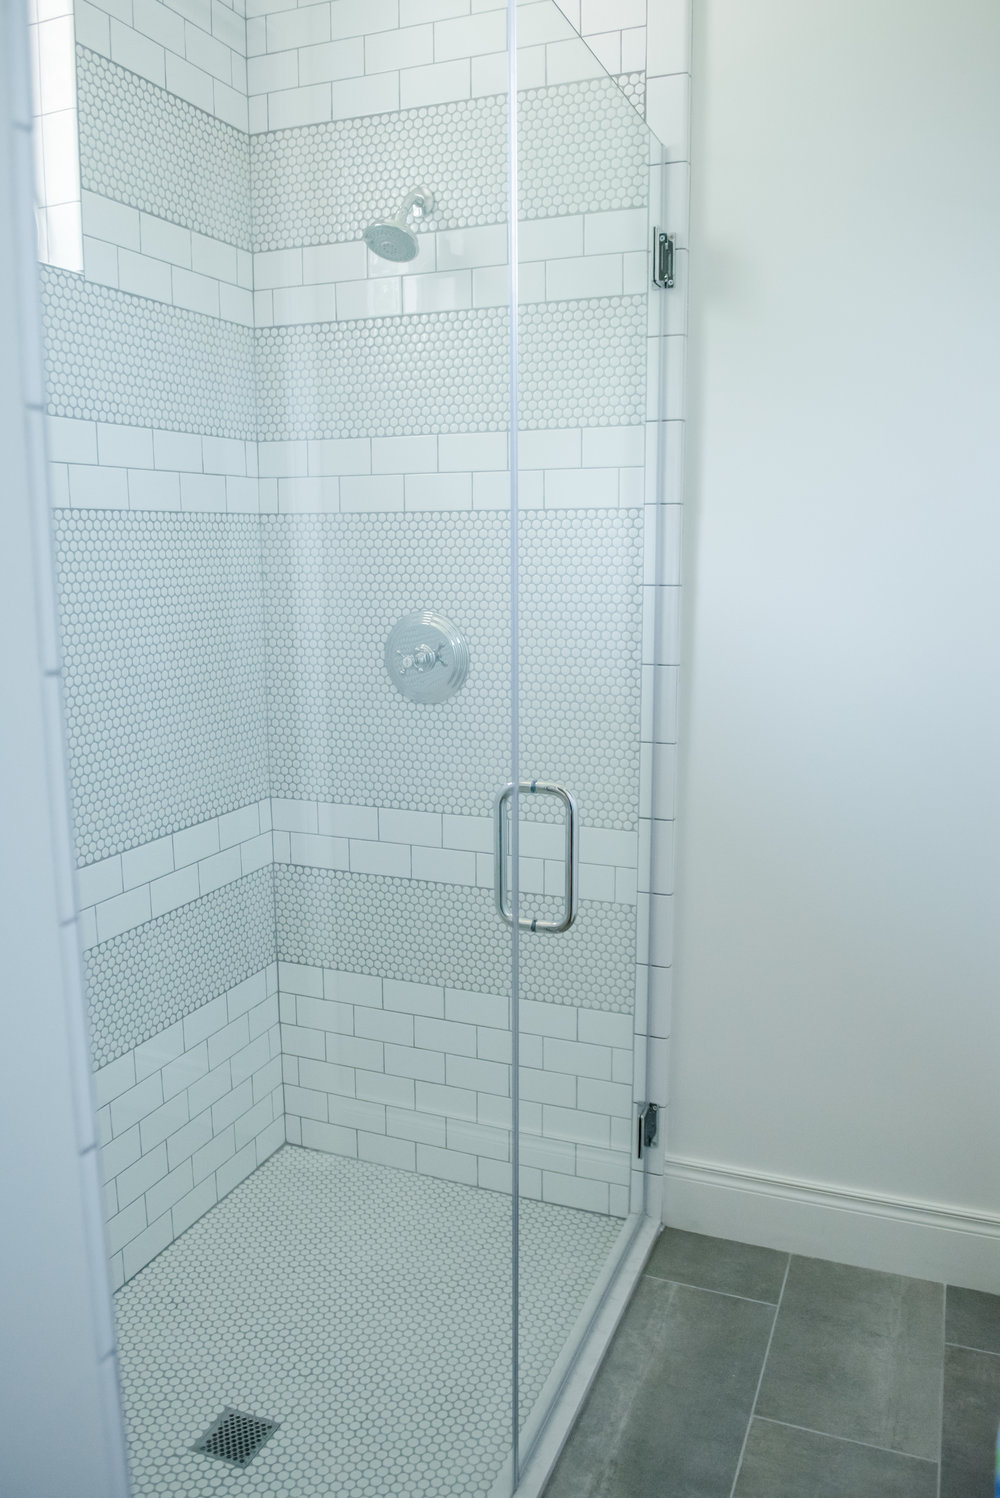 51+Bath+Tile+Subway+Pennytile+Gray+White+Transitional.jpg